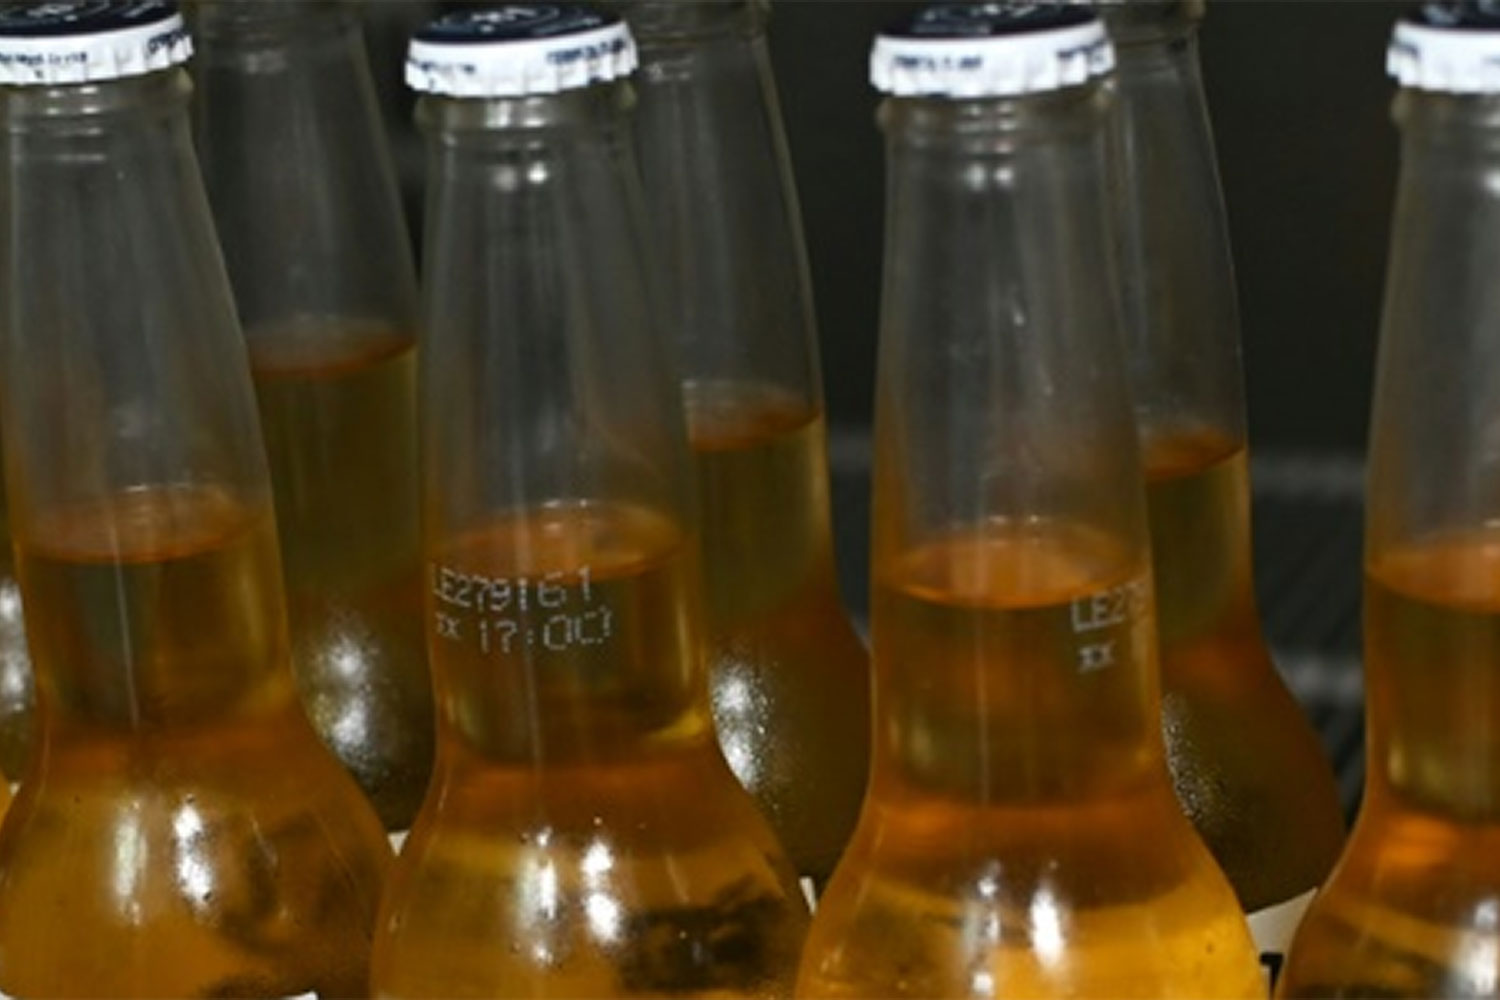 Corona Beer Production Stopped In Mexico Amid Coronavirus Pandemic